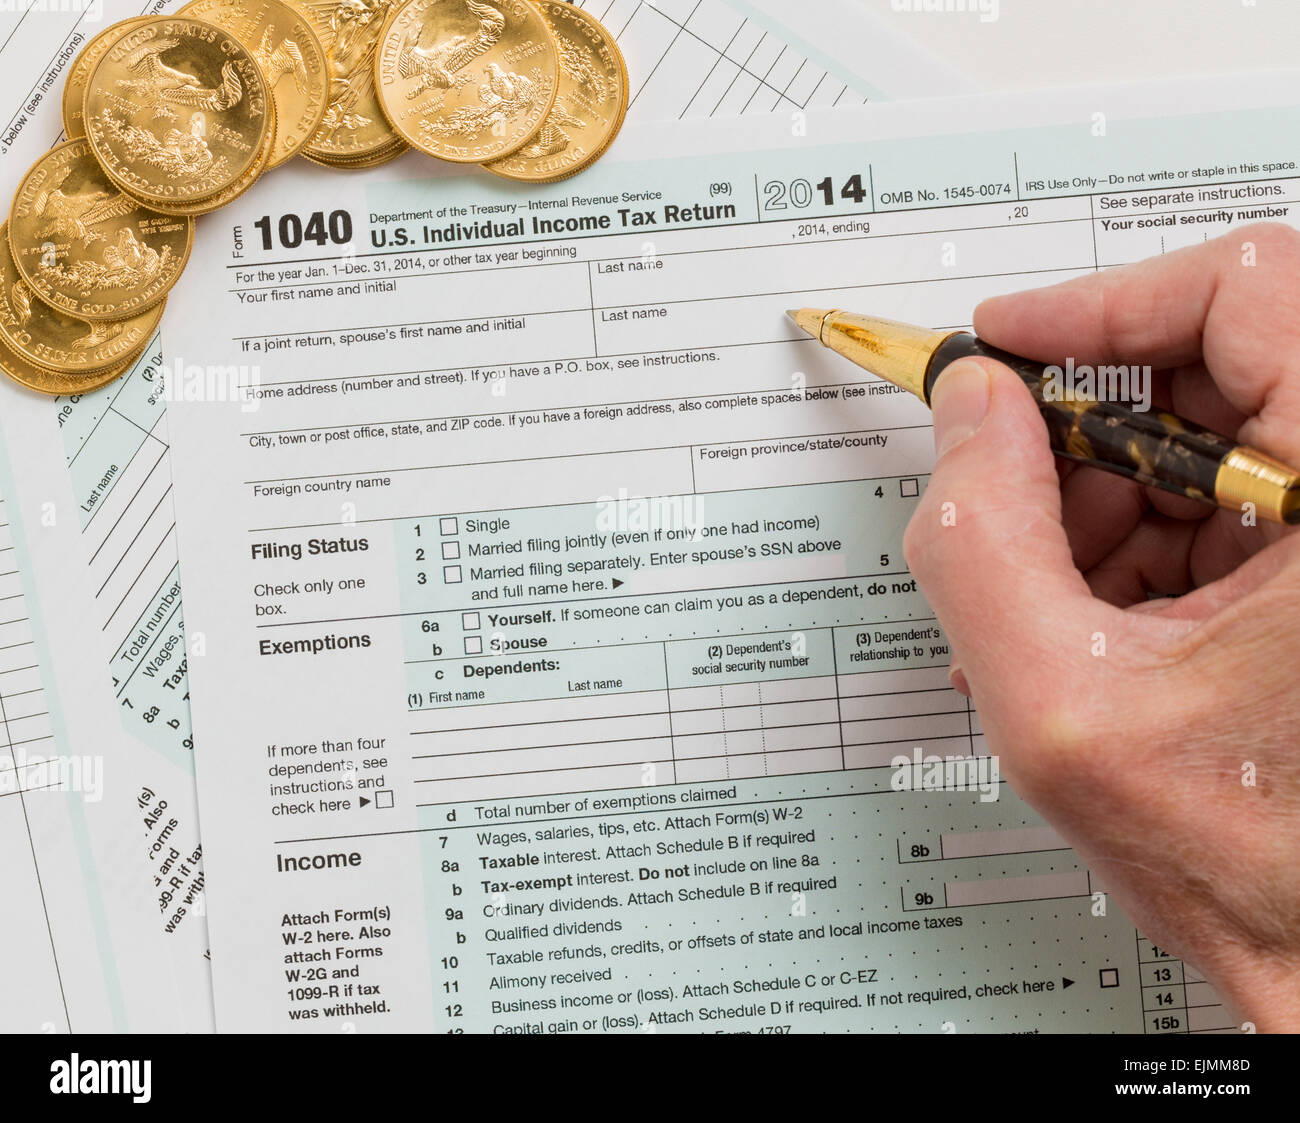 Caucasian hand with pen and solid gold eagle coins on USA tax form 1040 for year 2014 illustrating payment of taxes - Stock Image